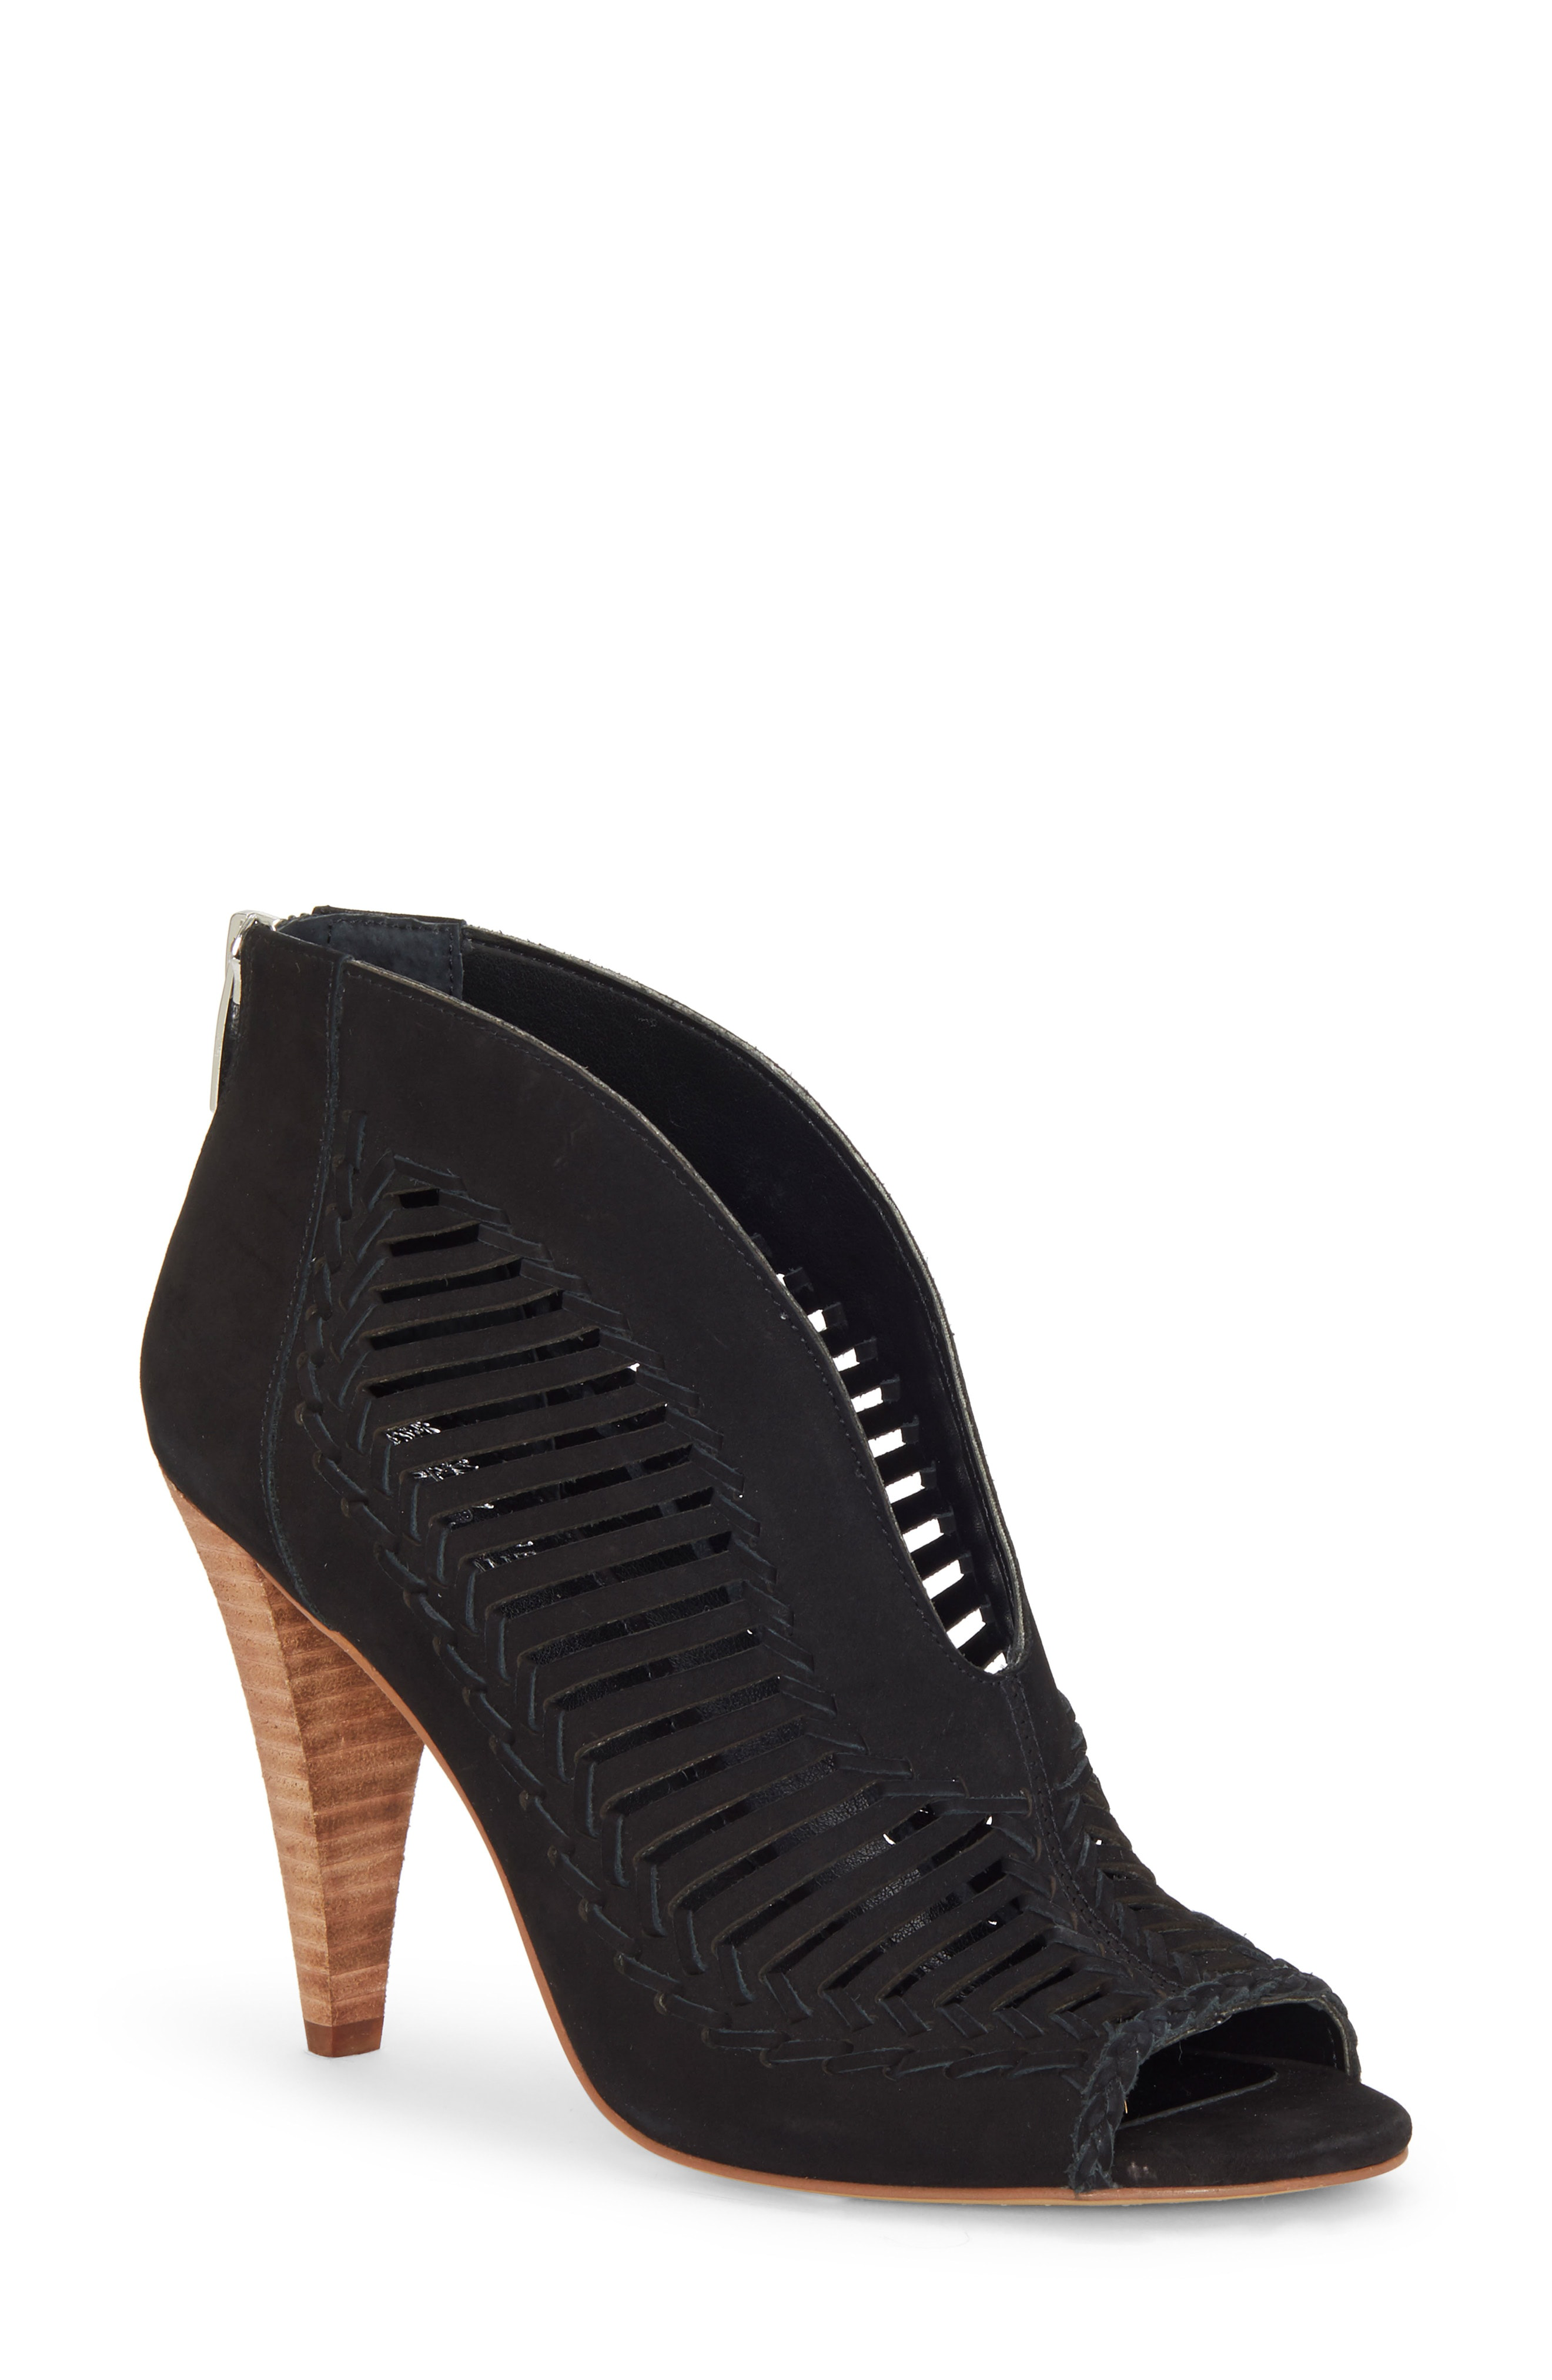 0387c582cf9 Vince Camuto Acha Cutout Peep Toe Bootie In Black Nubuck Leather ...